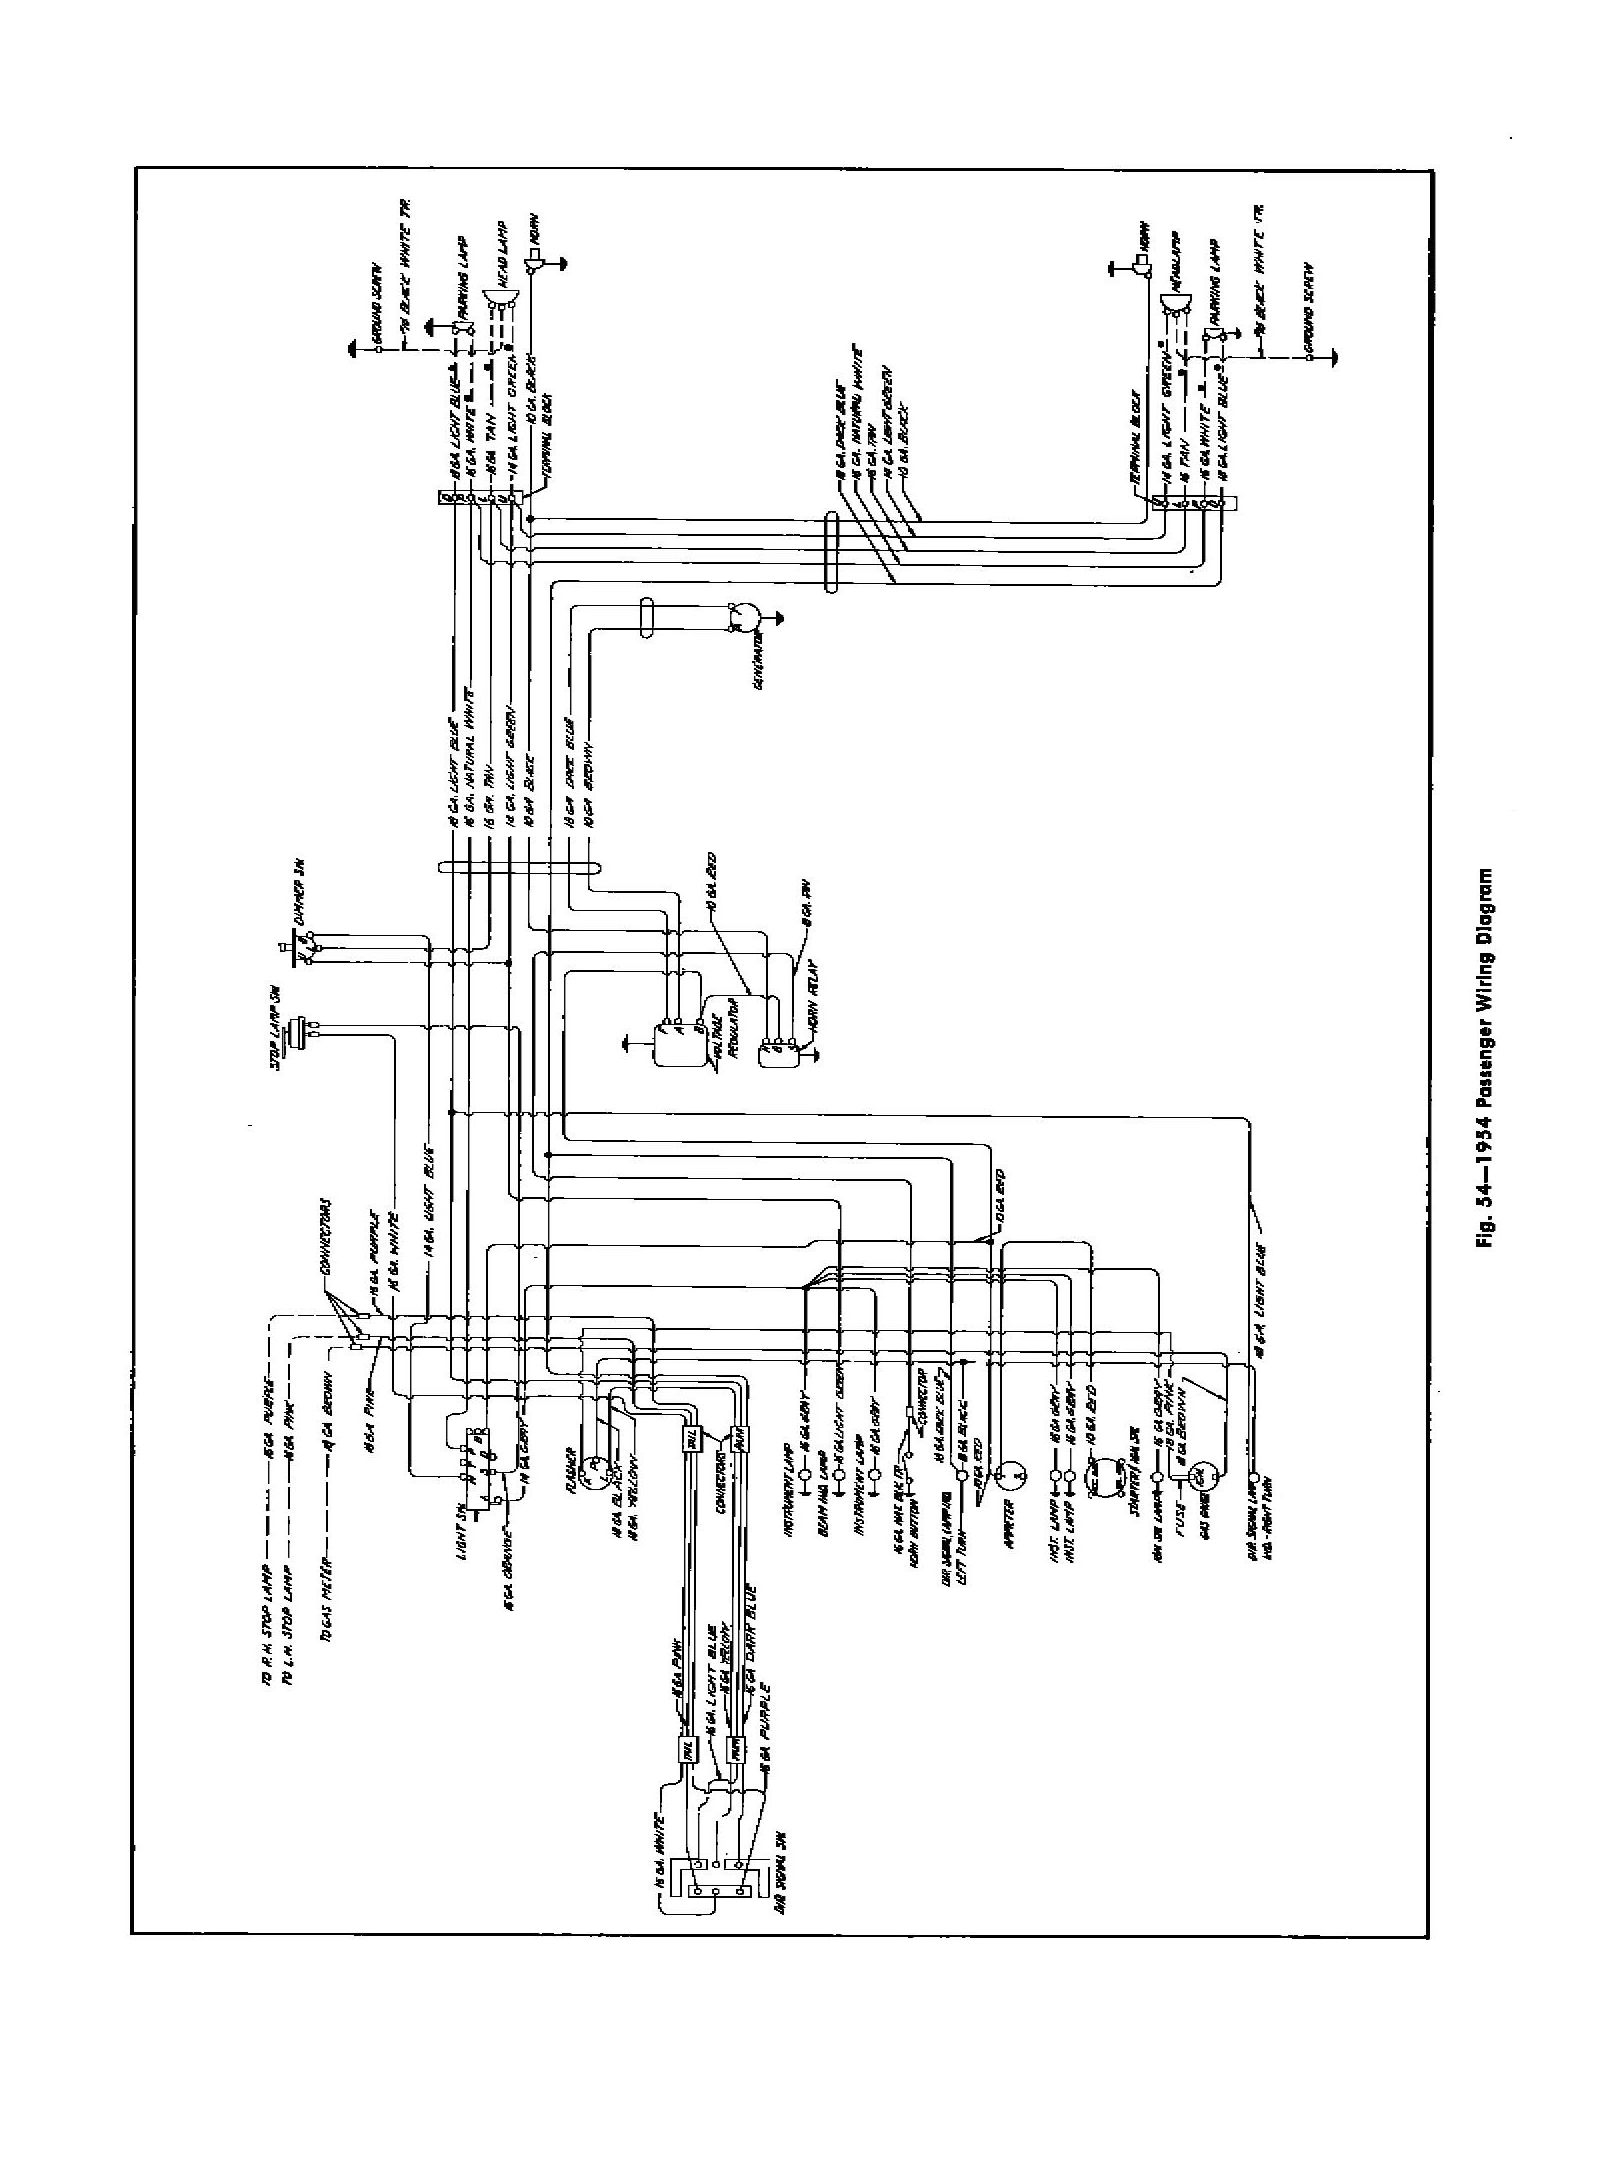 Chevy Truck Radio Wiring Diagram Opinions About 1989 Silverado 1954 Chevrolet For Car Free Engine Image User Manual Download 2005